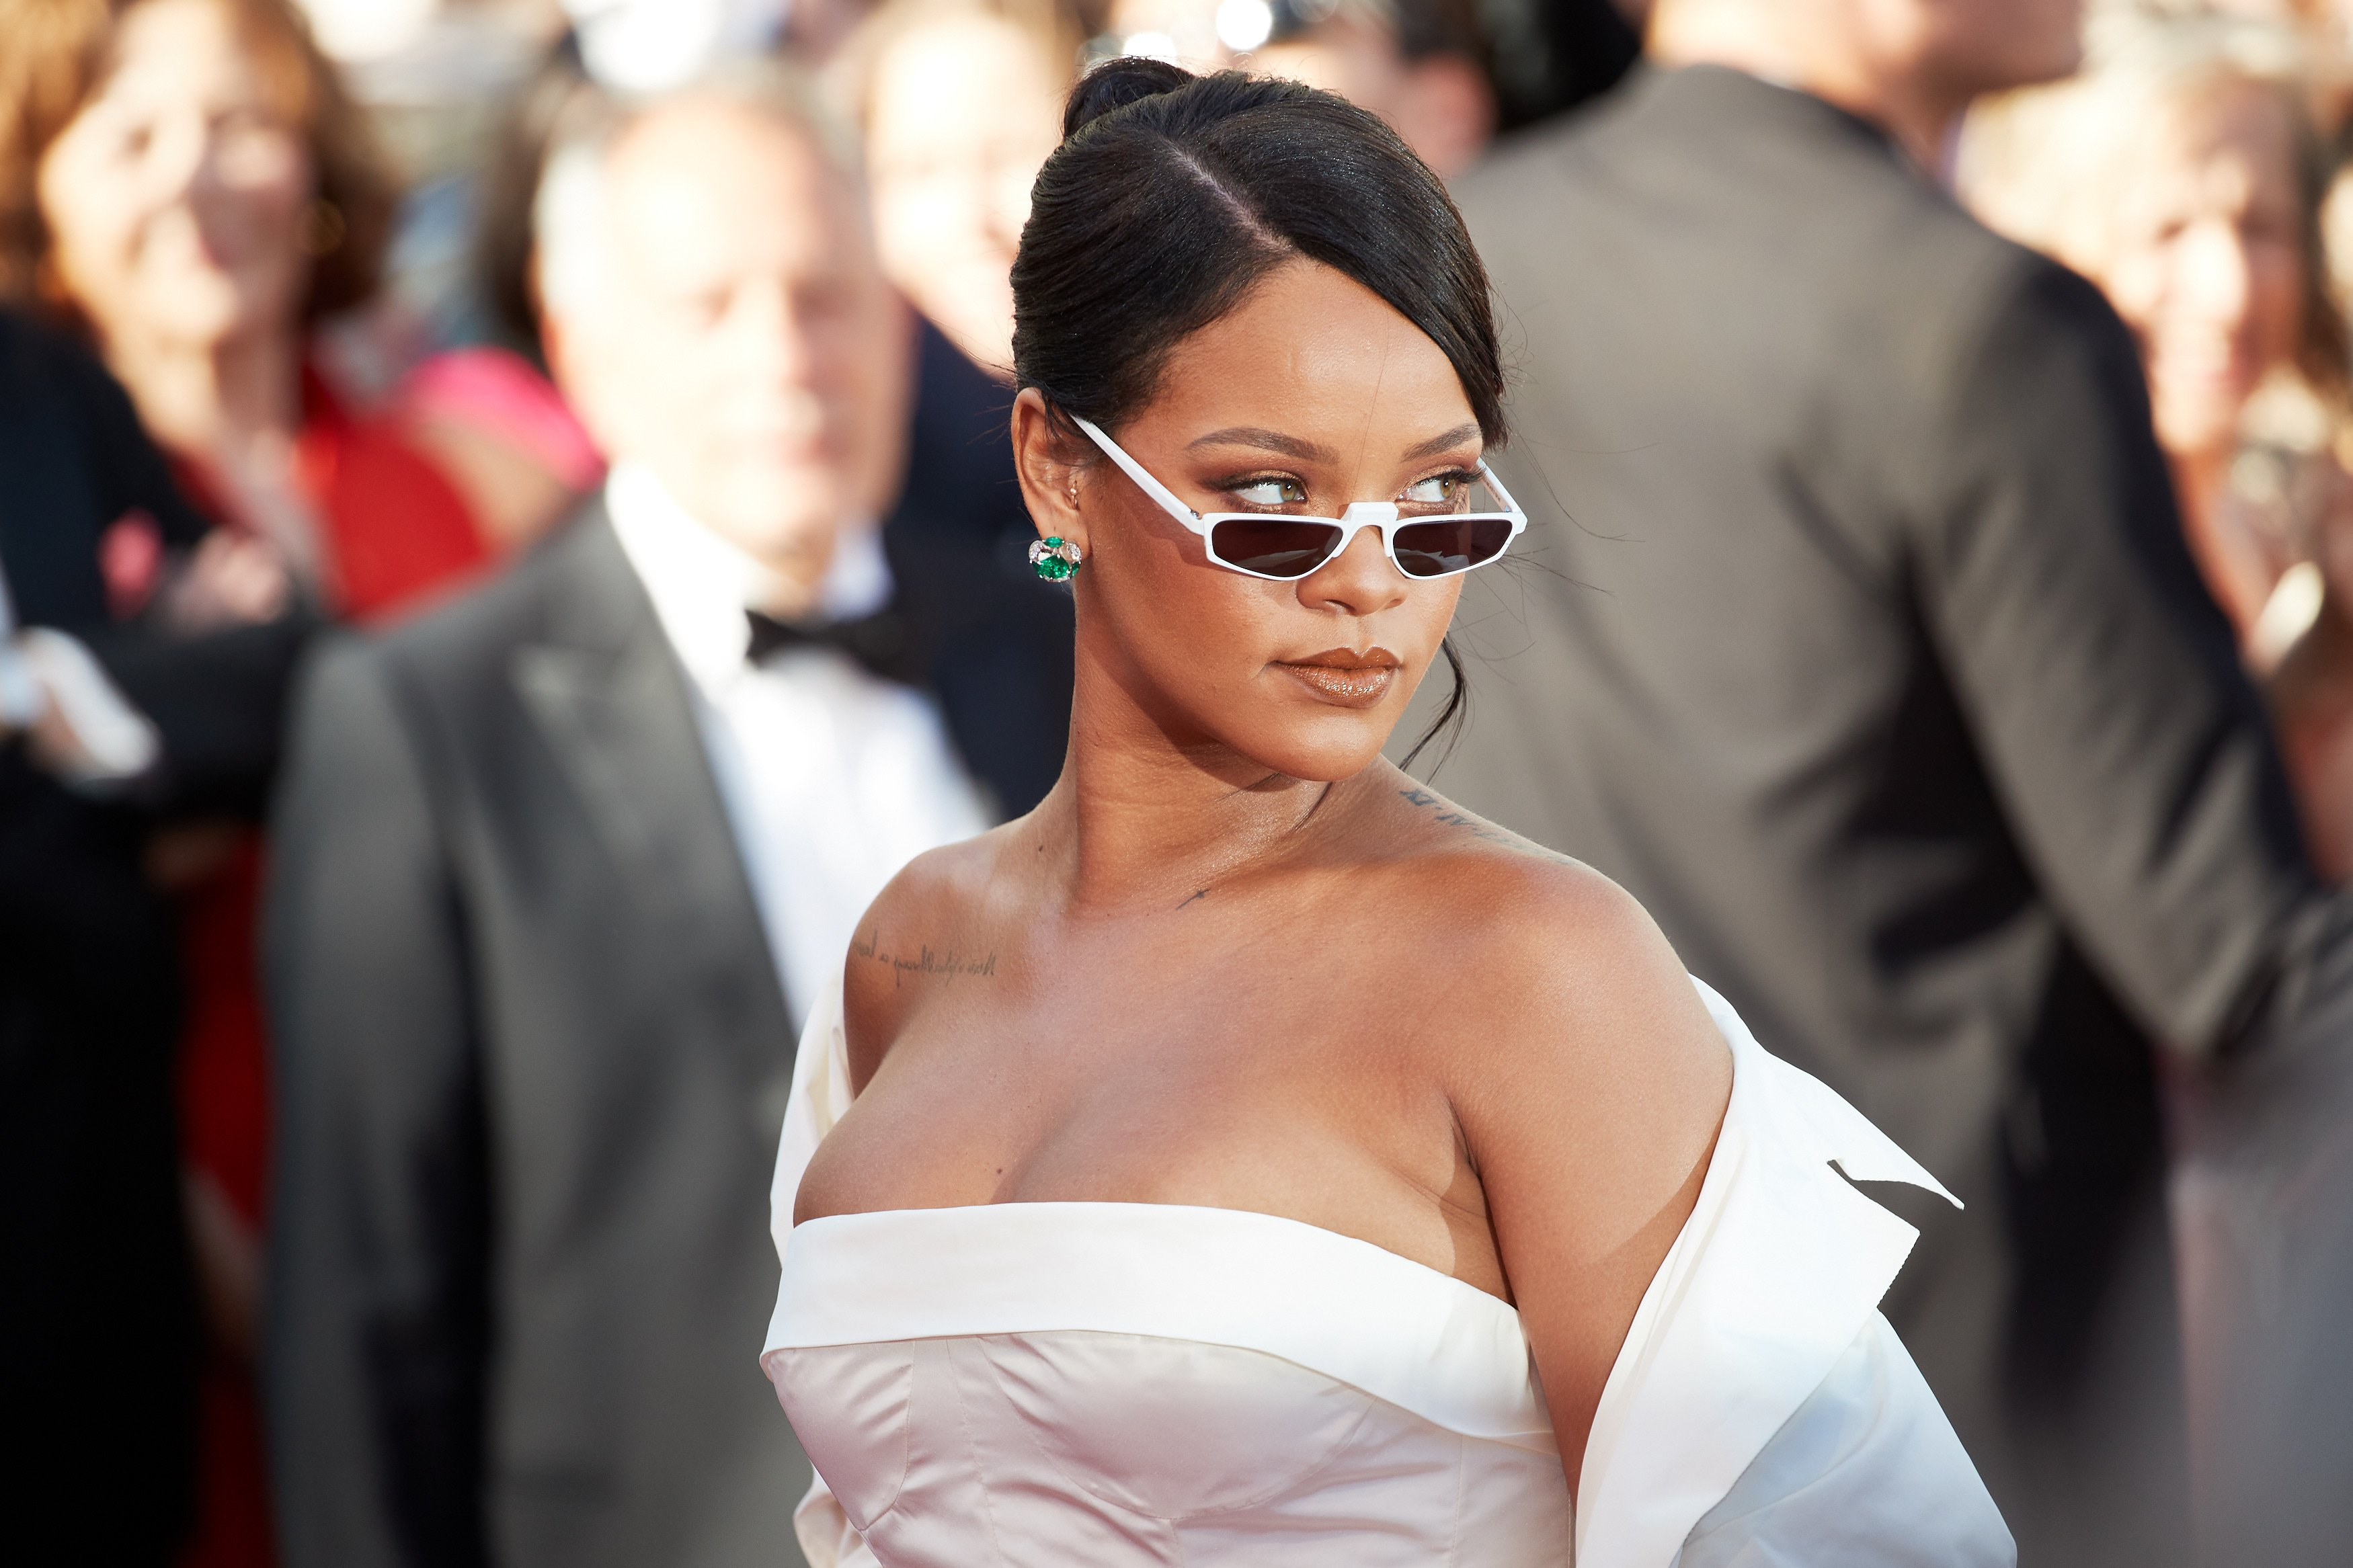 Rihanna during the 70th annual Cannes Film Festival on May 19, 2017 in France   Photo: Getty Images